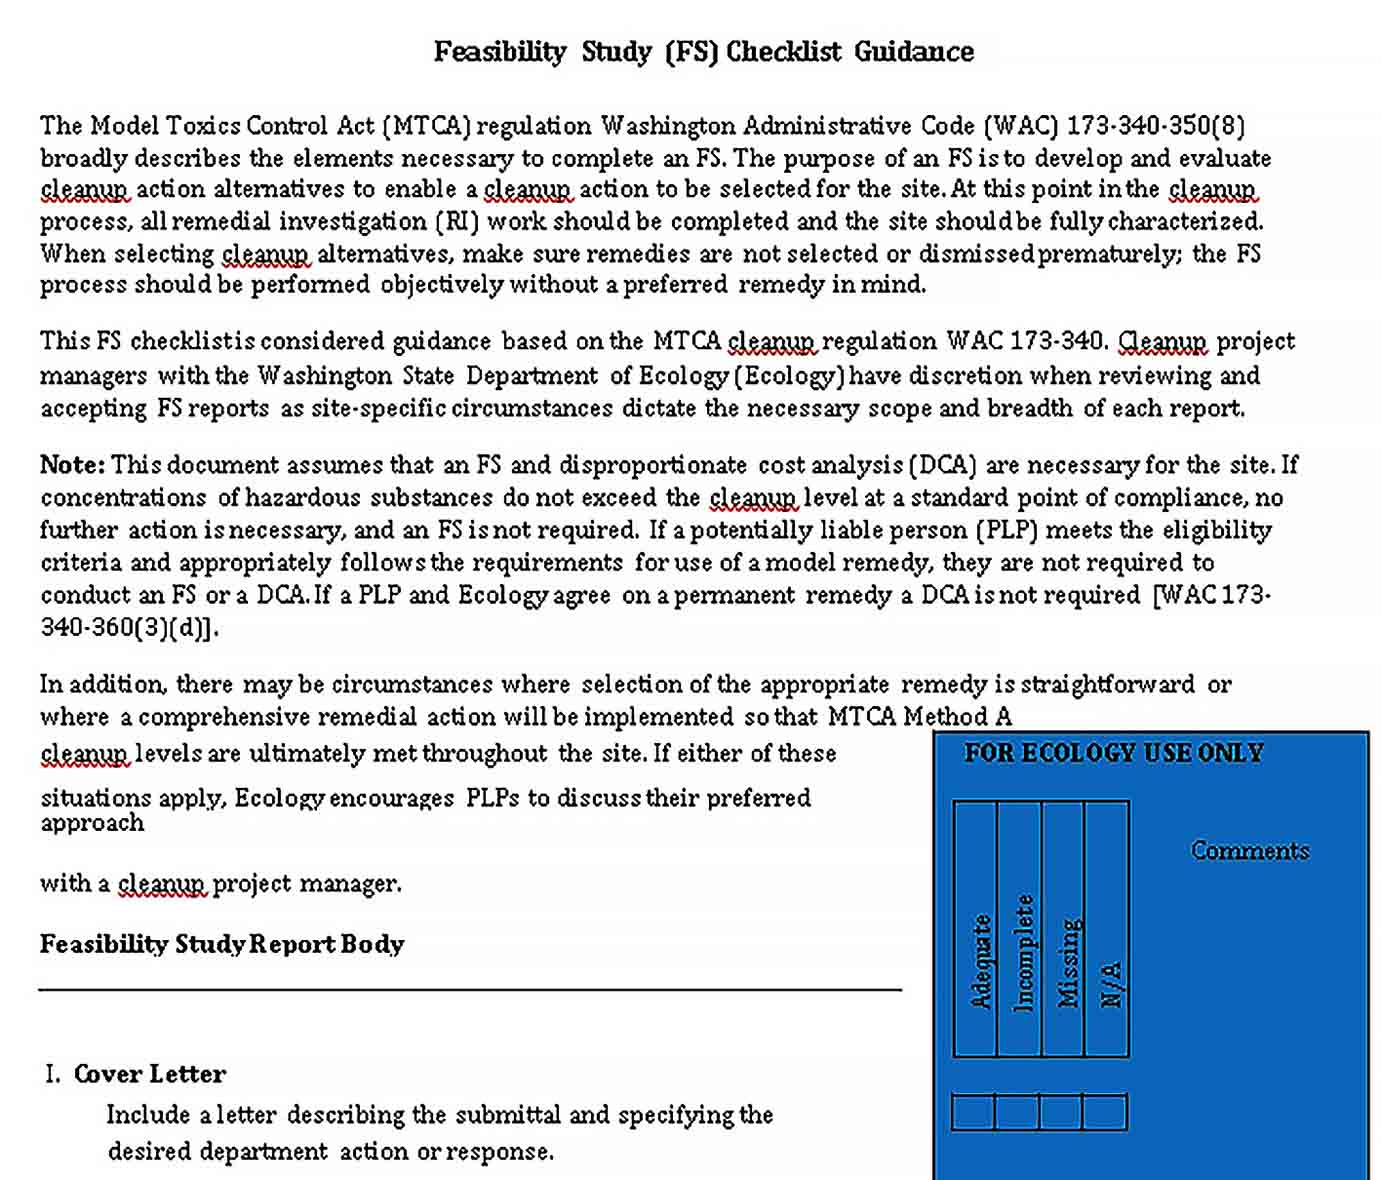 Template Feasibility Study Checklist Template